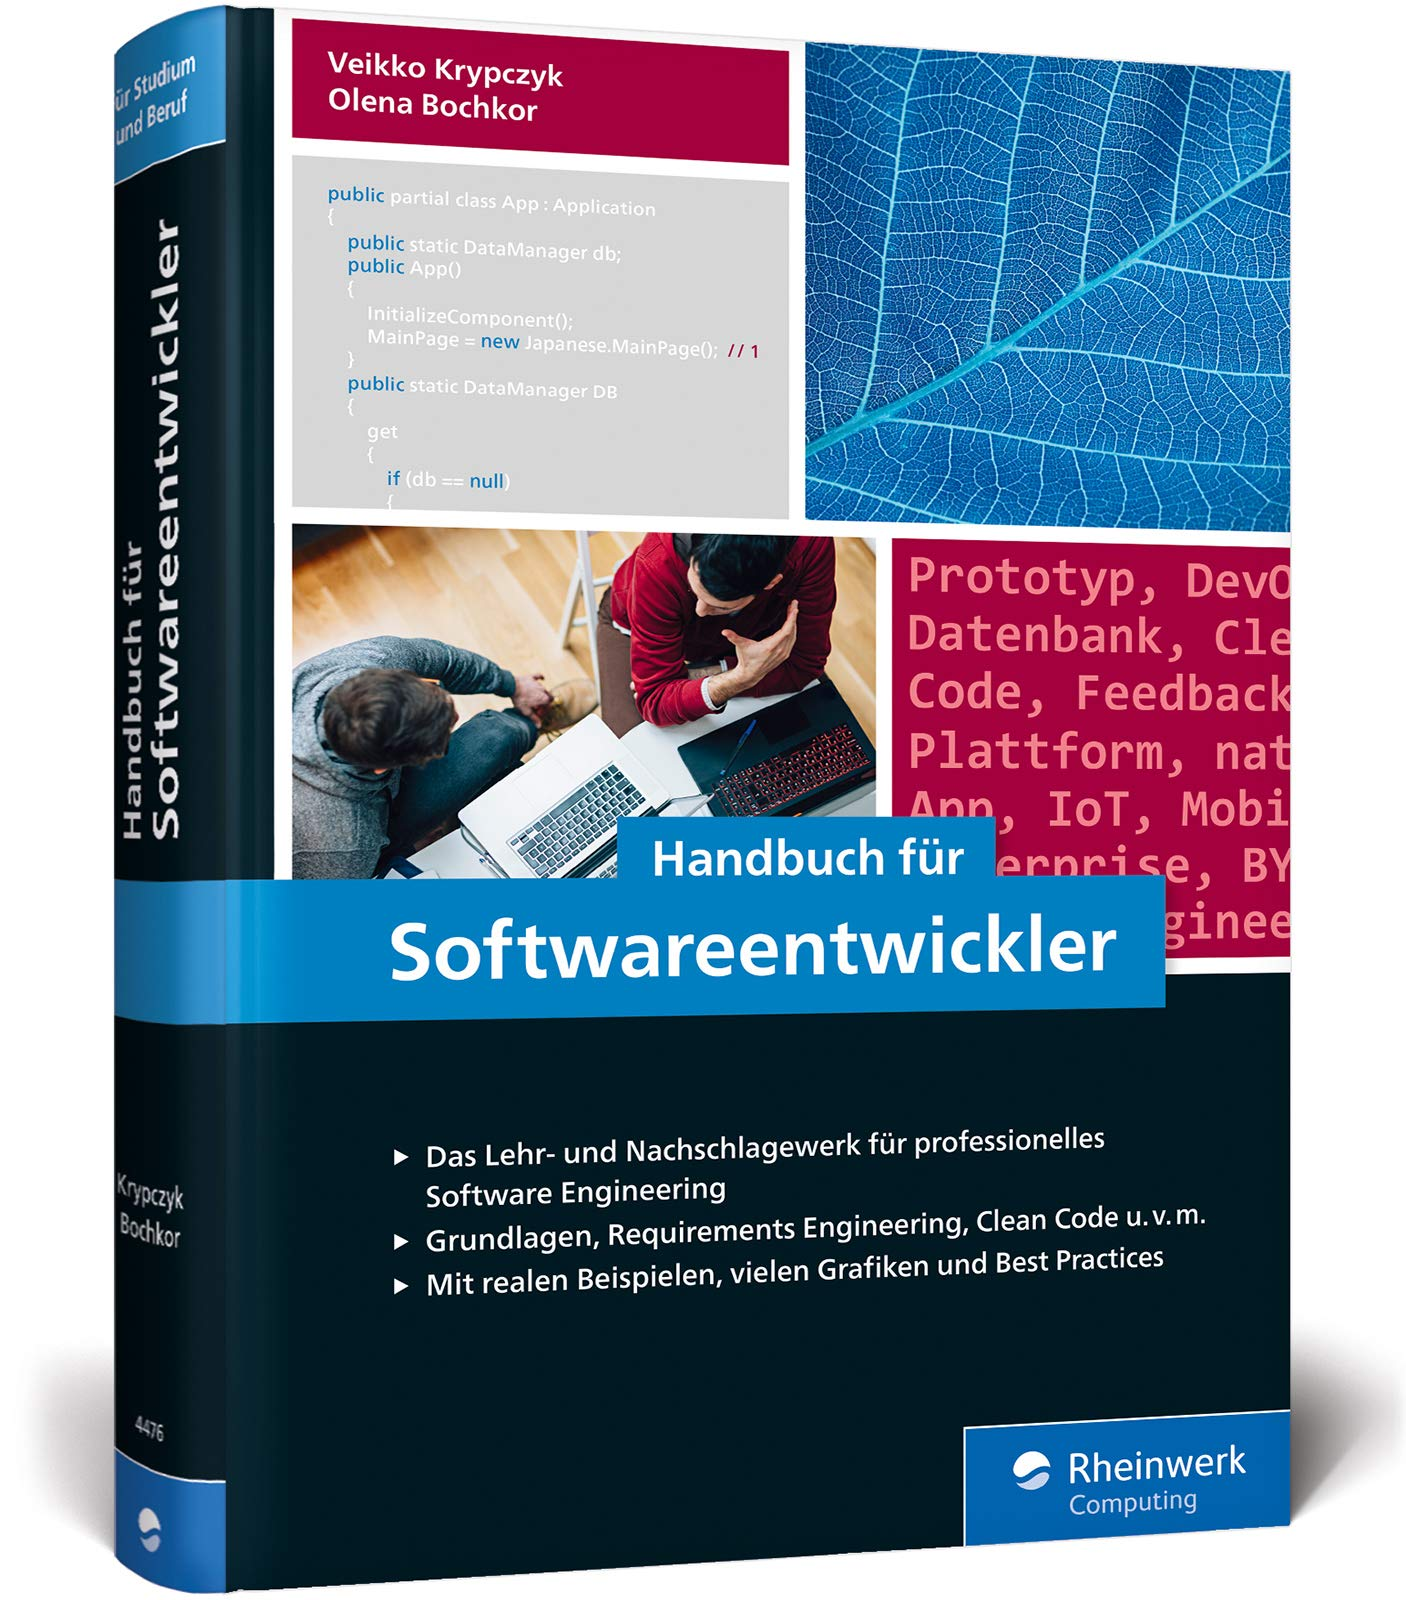 Handbuch für Softwareentwickler: Das Standardwerk zu professionellem Software Engineering